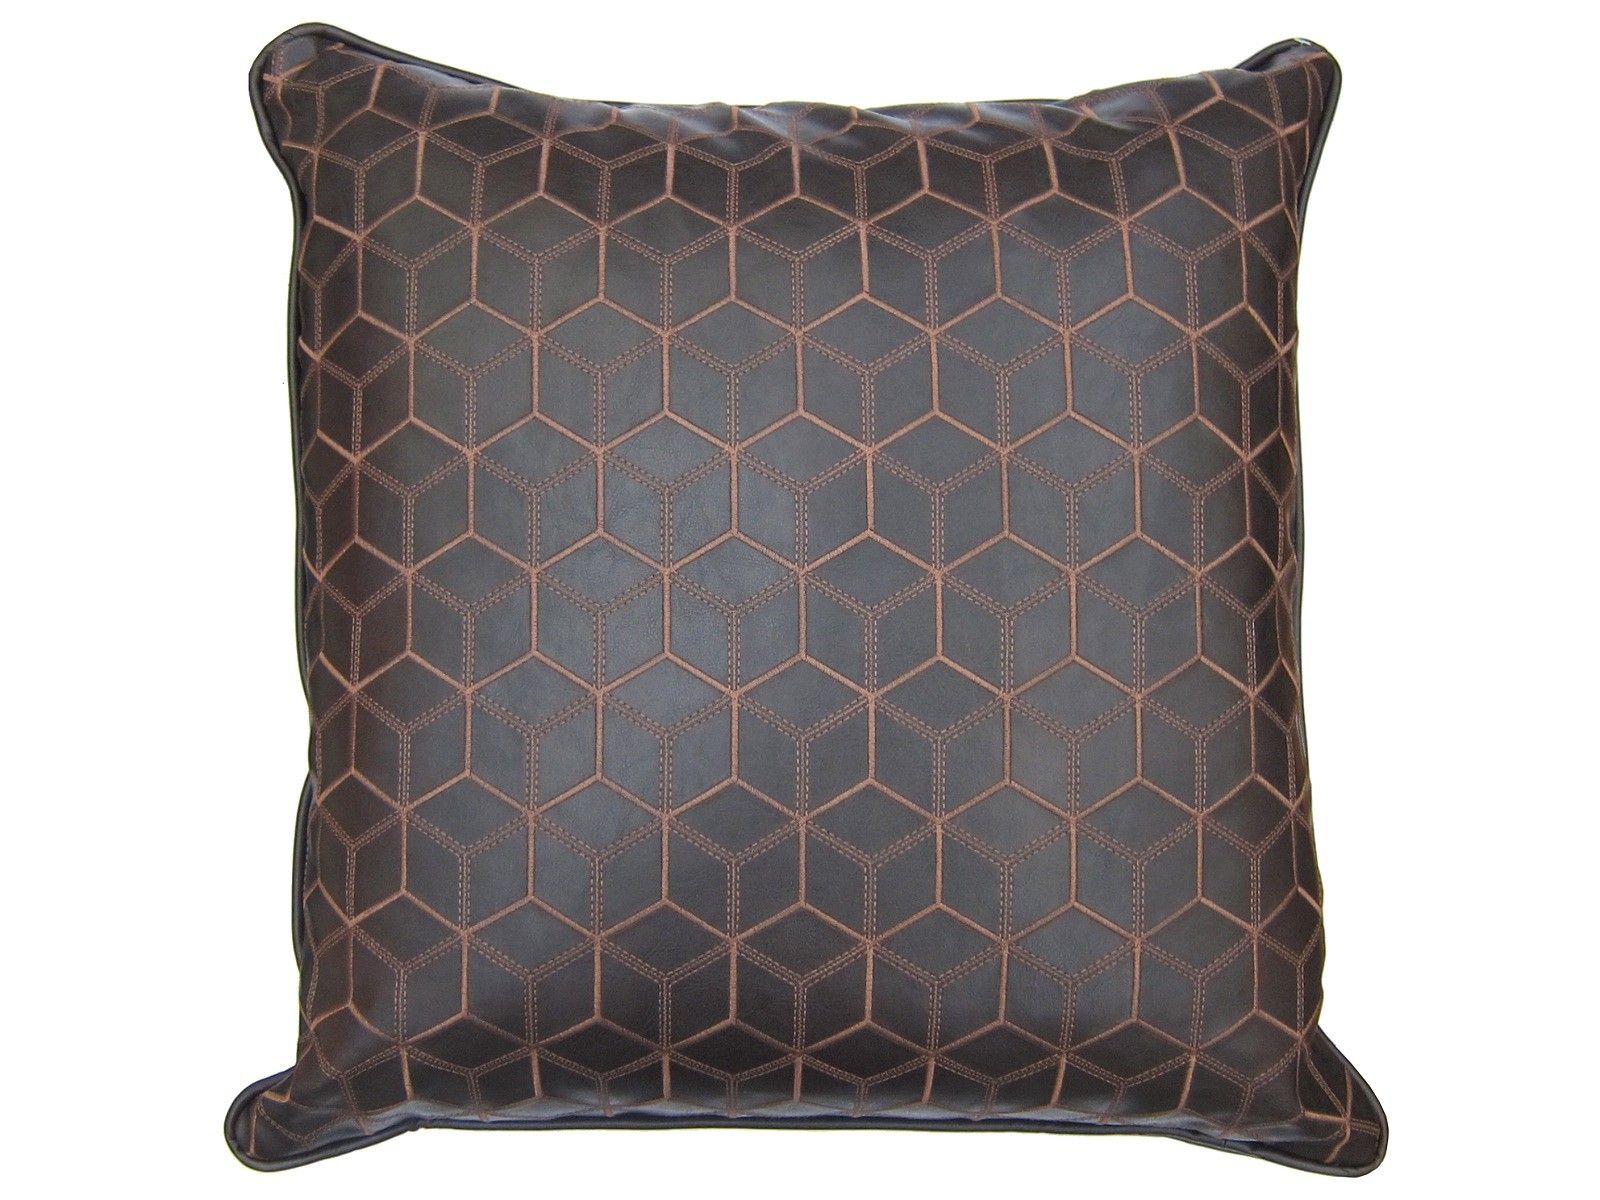 Darkin pillow from Rodeo Home Pillows Pinterest Pillows, Office spaces and Living spaces